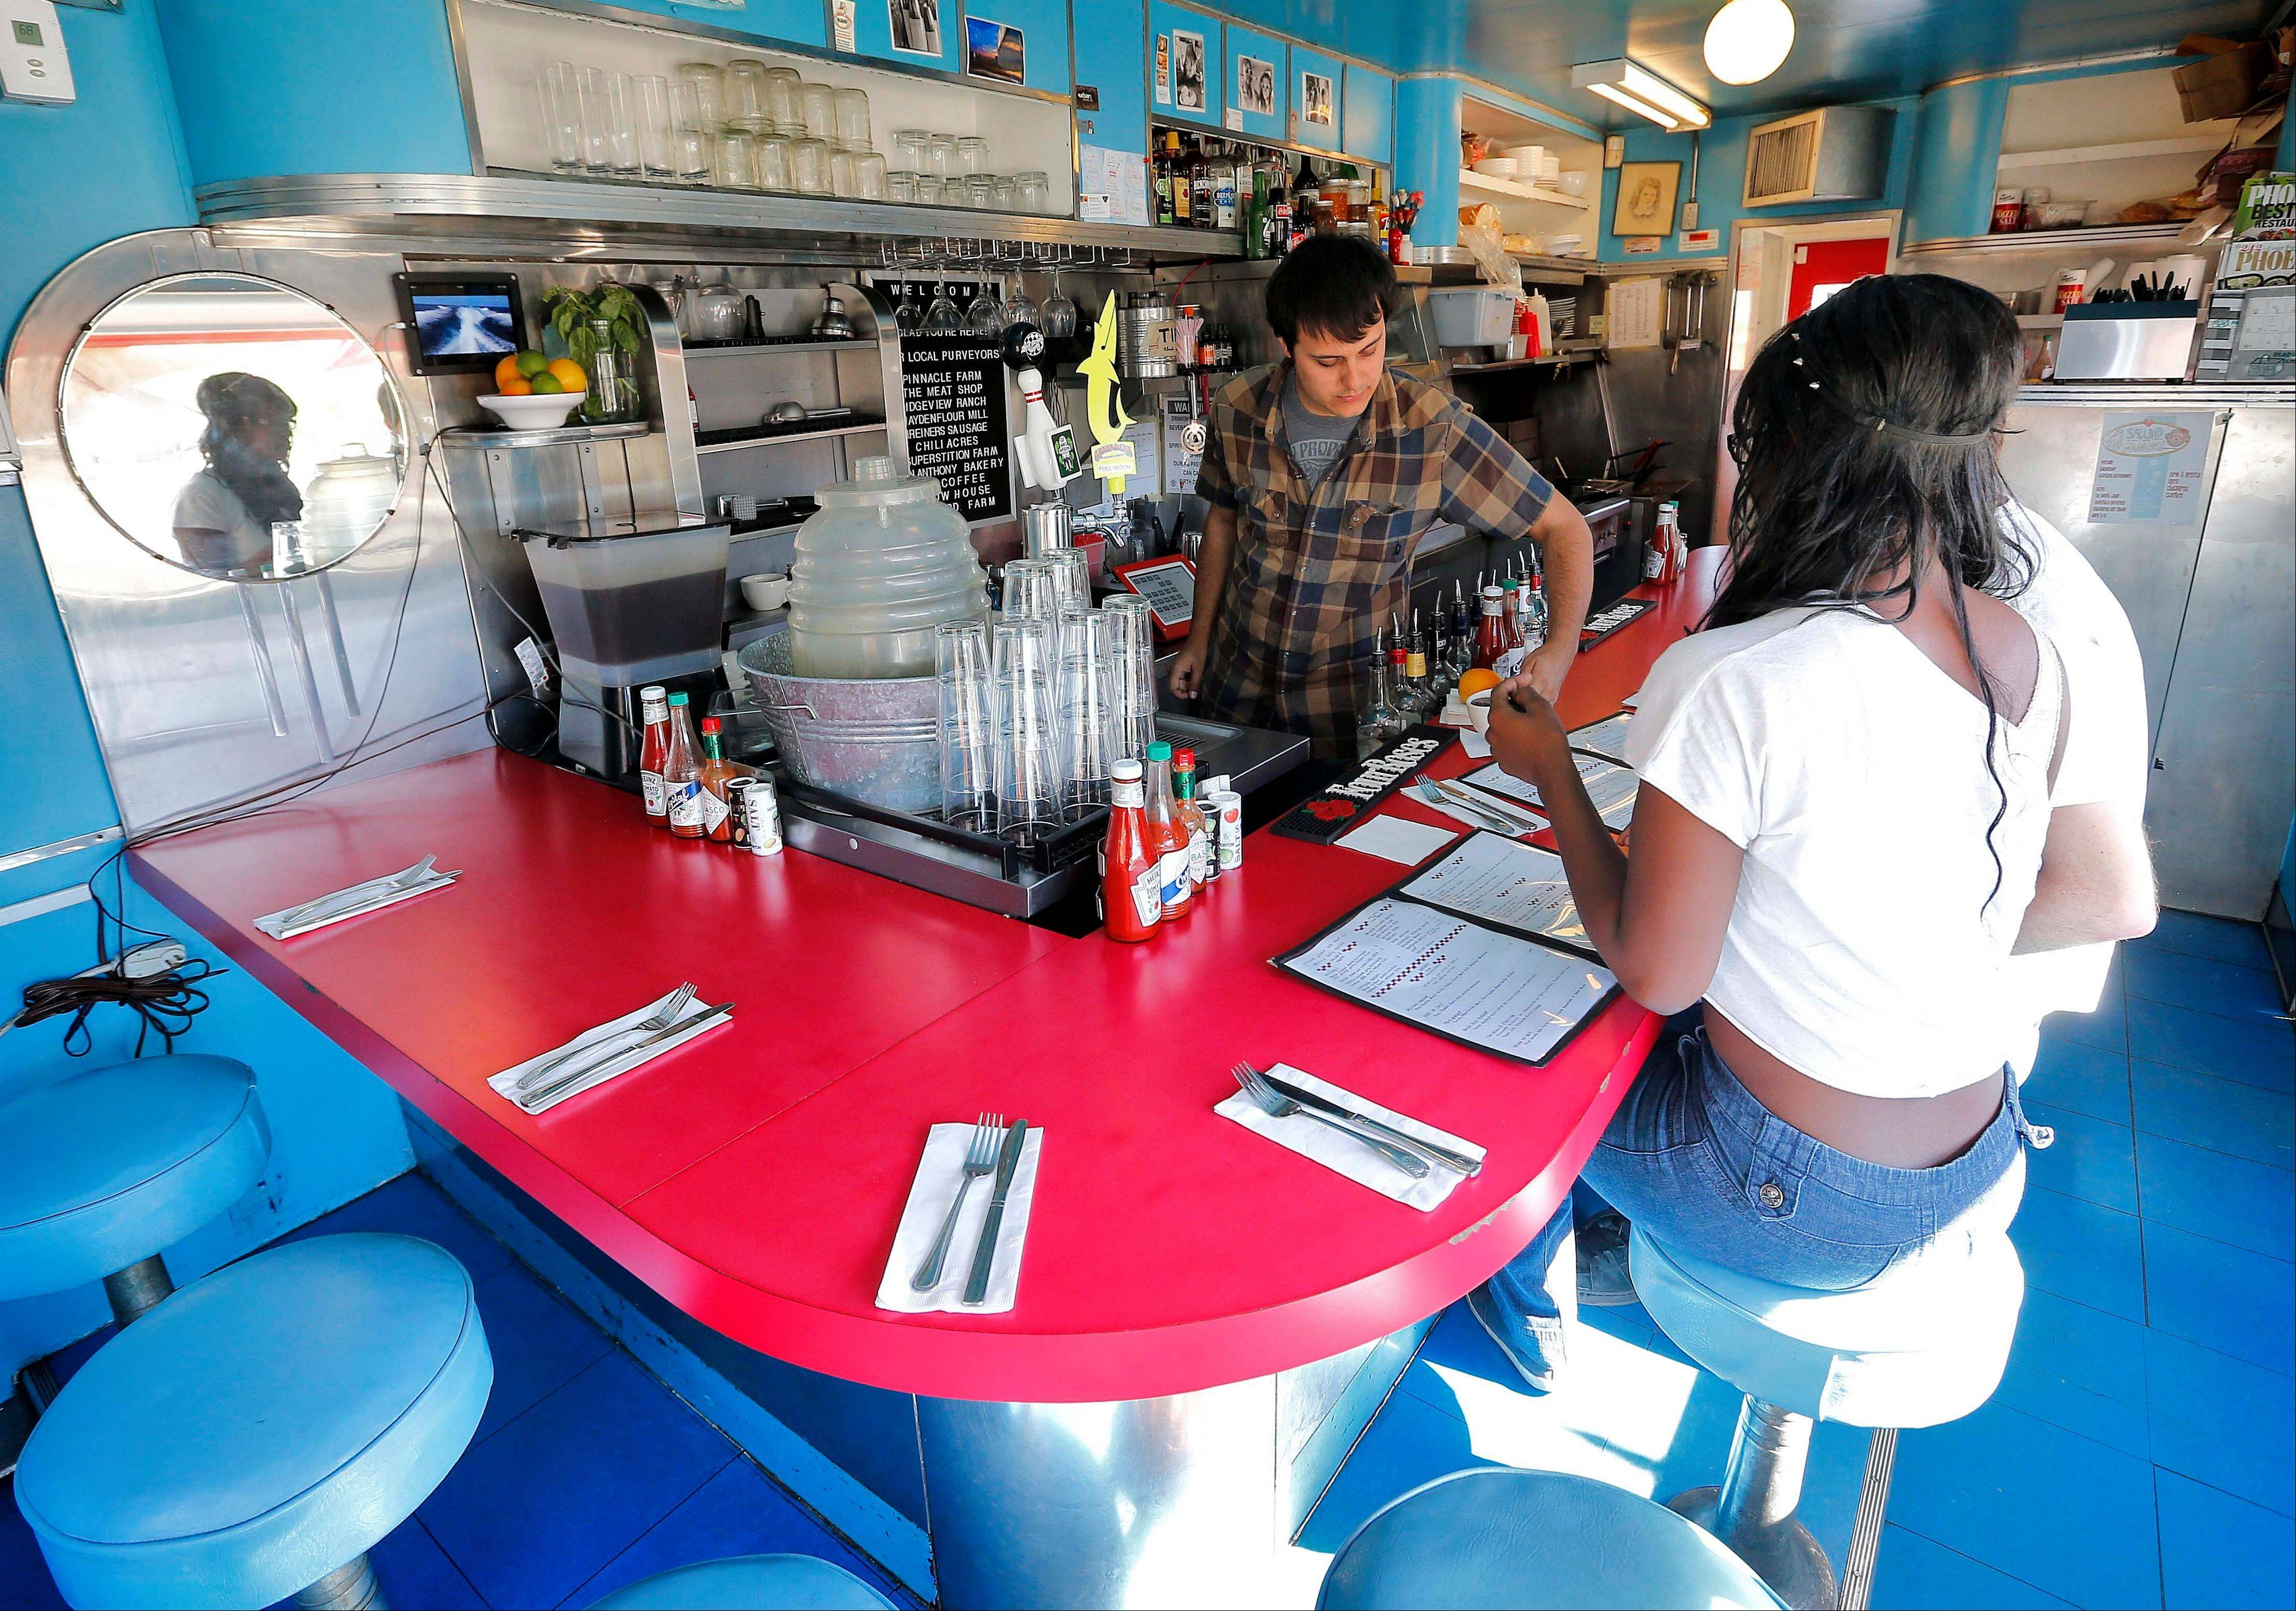 Manager Wayne Coats serves coffee to guests at the Welcome Diner in Phoenix. The 9-stool Valentine Diner was built in 1945 in Wichita, Kan., and moved in 1955 to Williams, Ariz., where it was operated on Route 66 for 25 years.